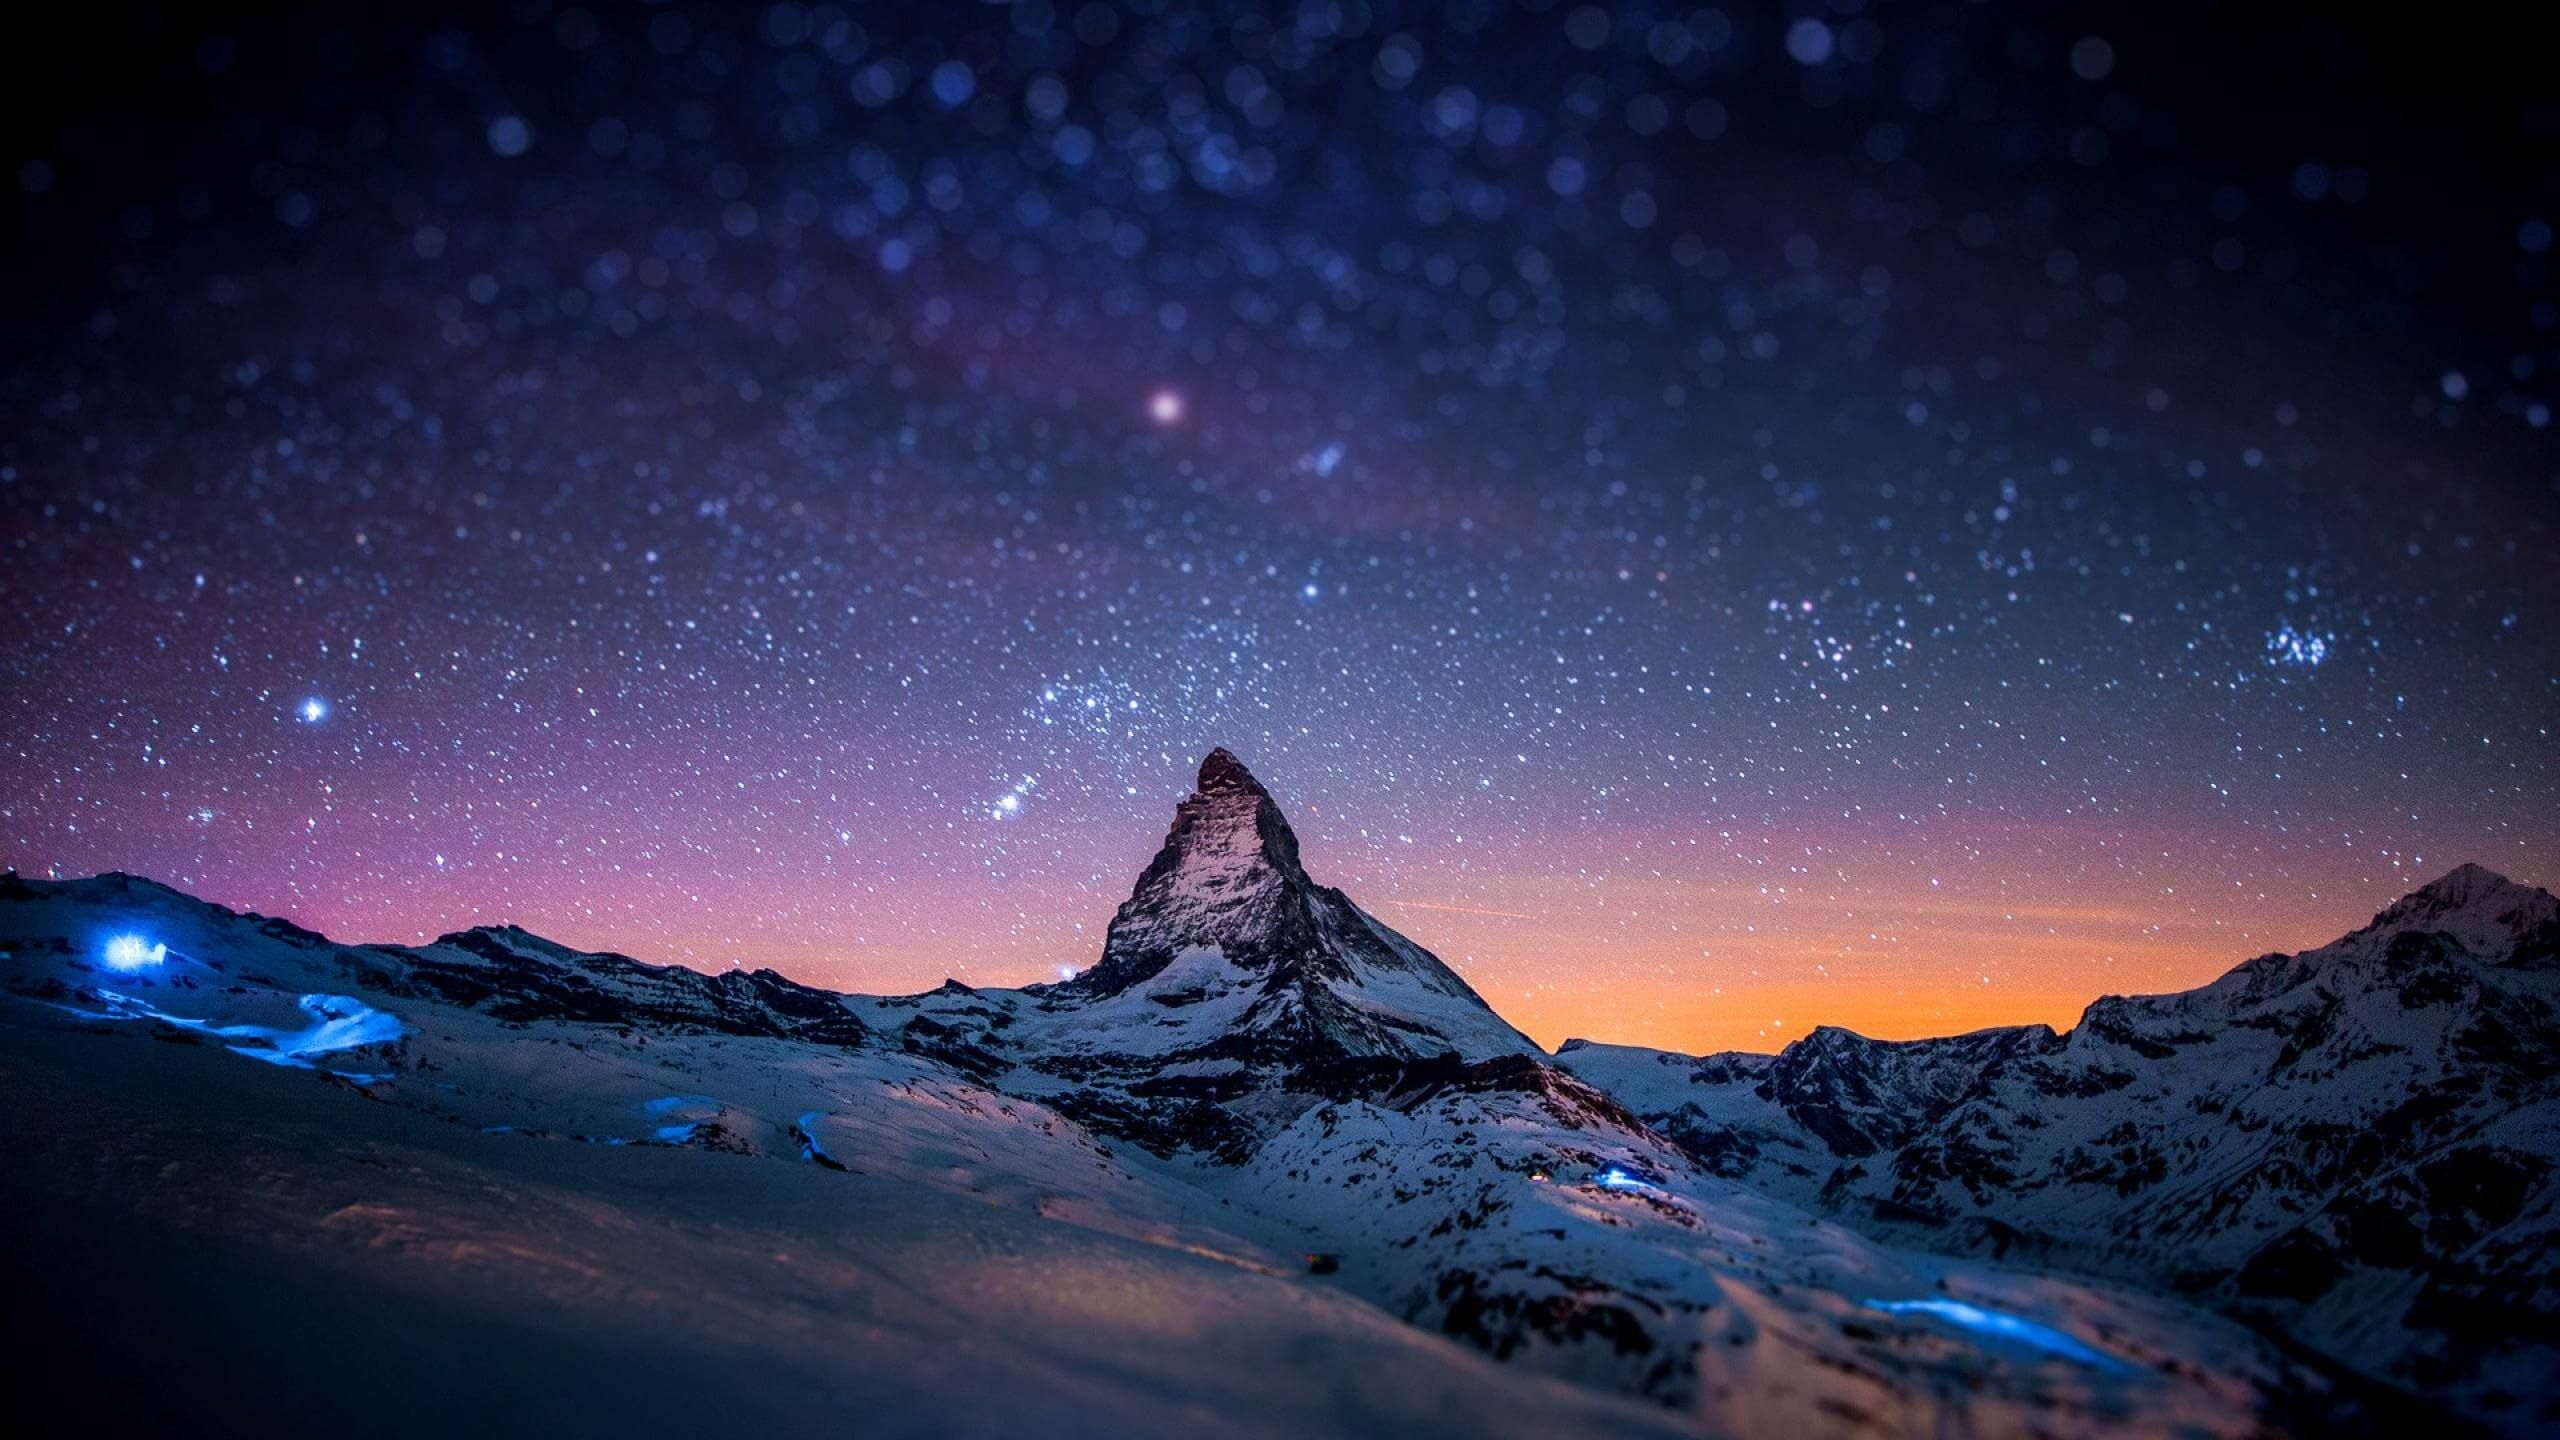 How To Raise Your Vibration In A New World Earth Pictures Pictures Of The Week Matterhorn Mountain